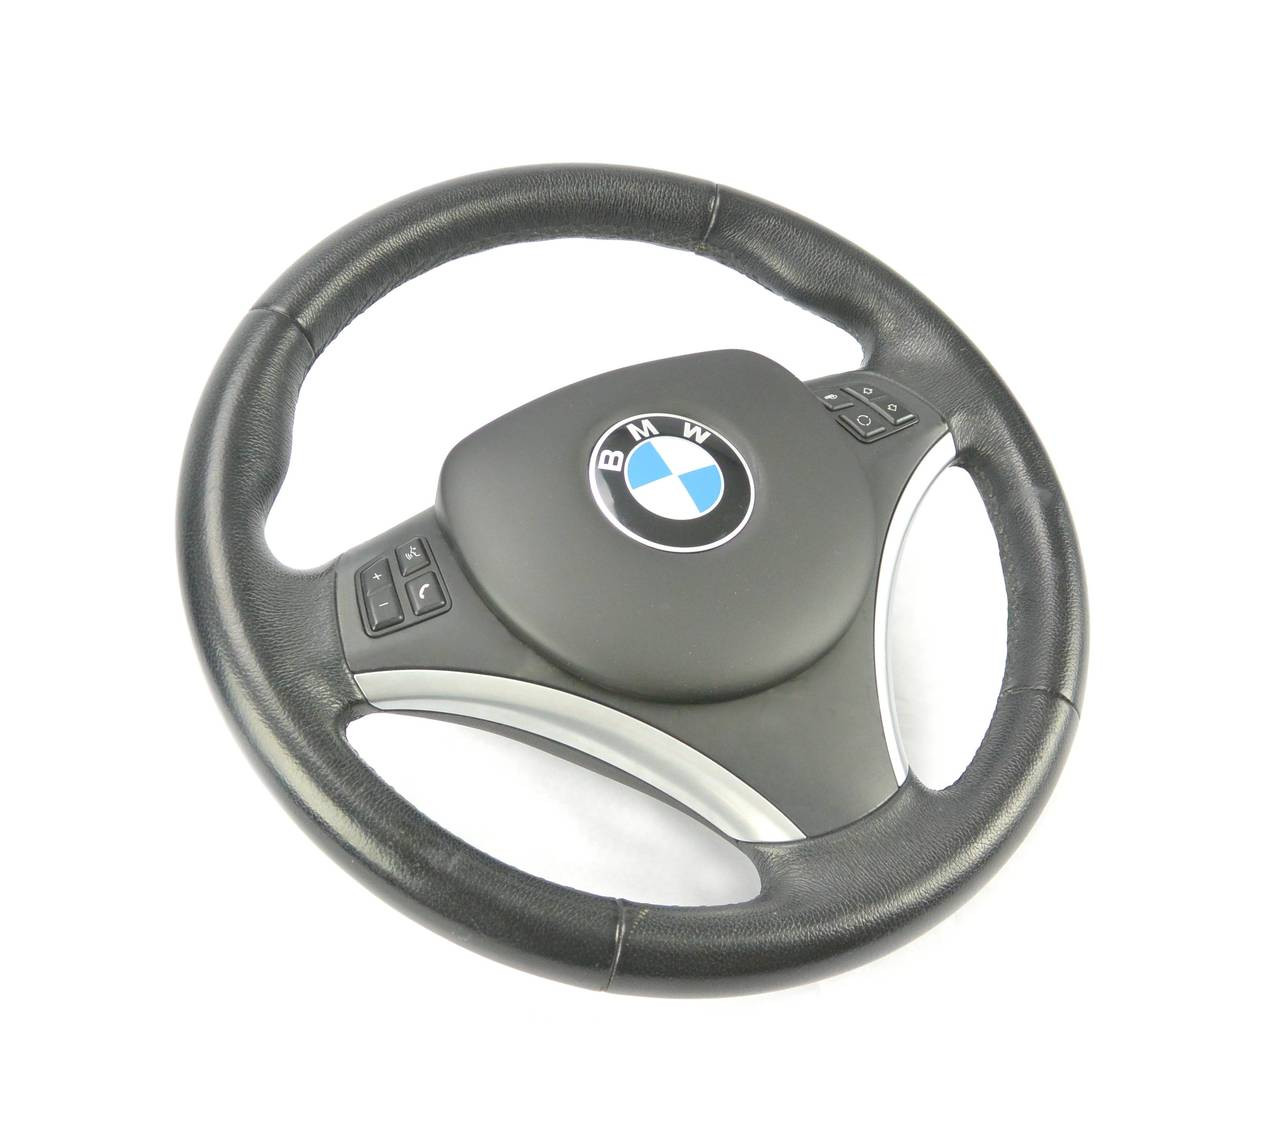 BMW E9X Steering Wheel SRS Airbag Delete Panel fully installed.